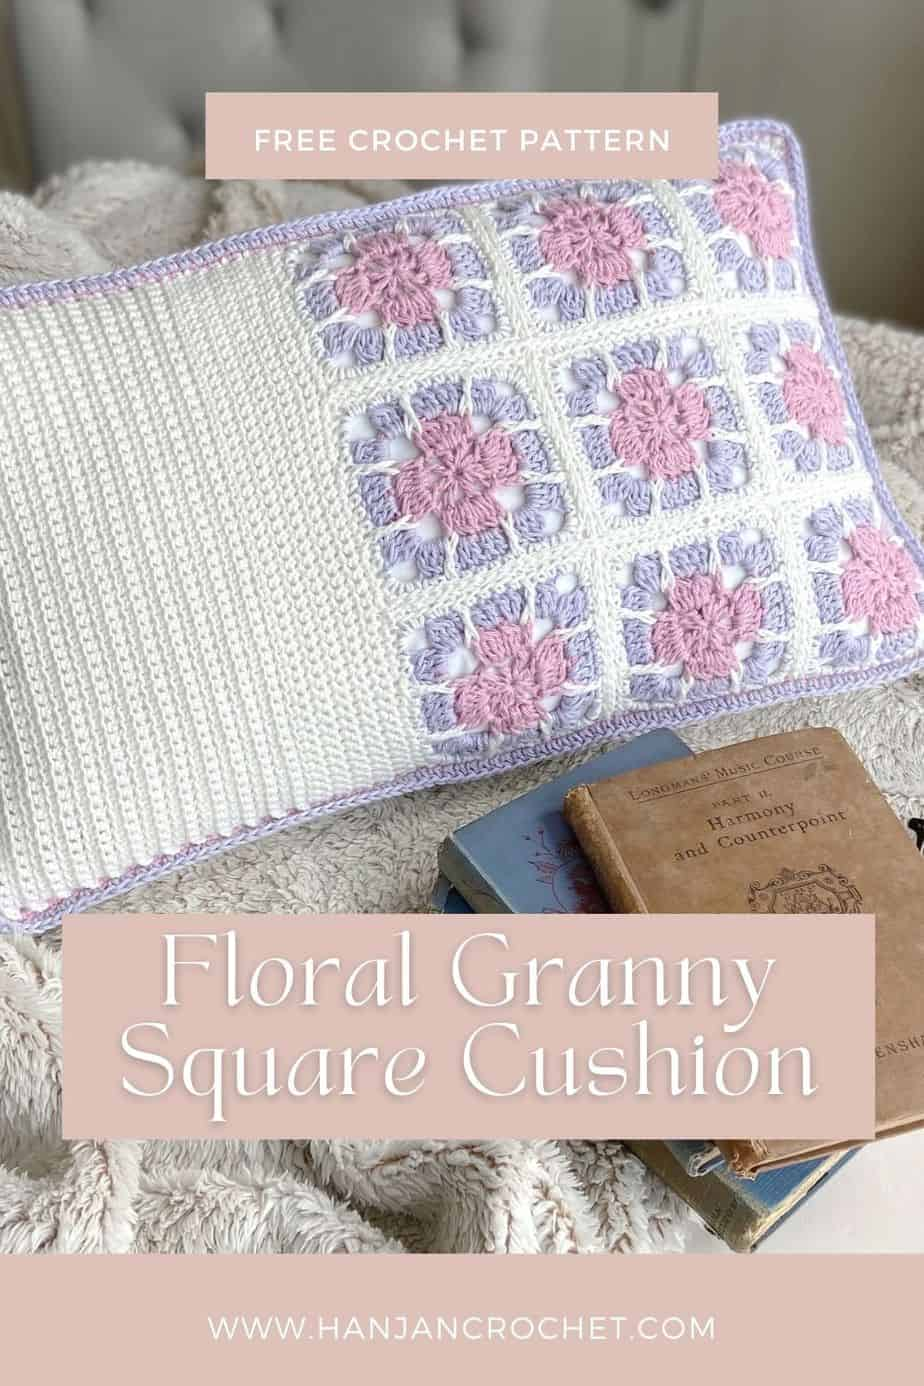 pink, lilac and whit floral granny square pillow with books and fluffy blanket